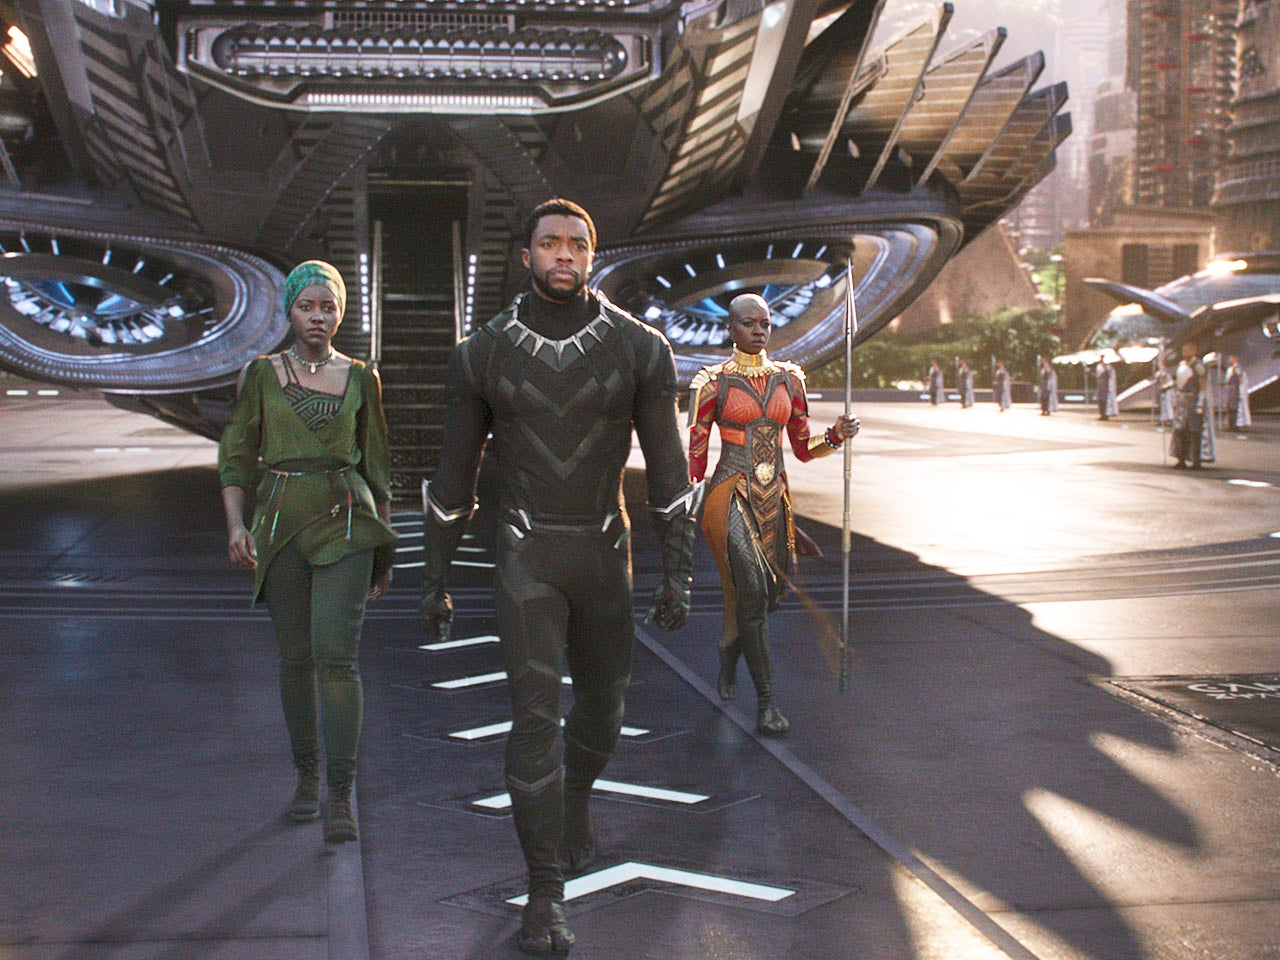 'Black Panther' Too: The Smithsonian Welcomes Wakanda With A Costume Display You Have To See To Believe